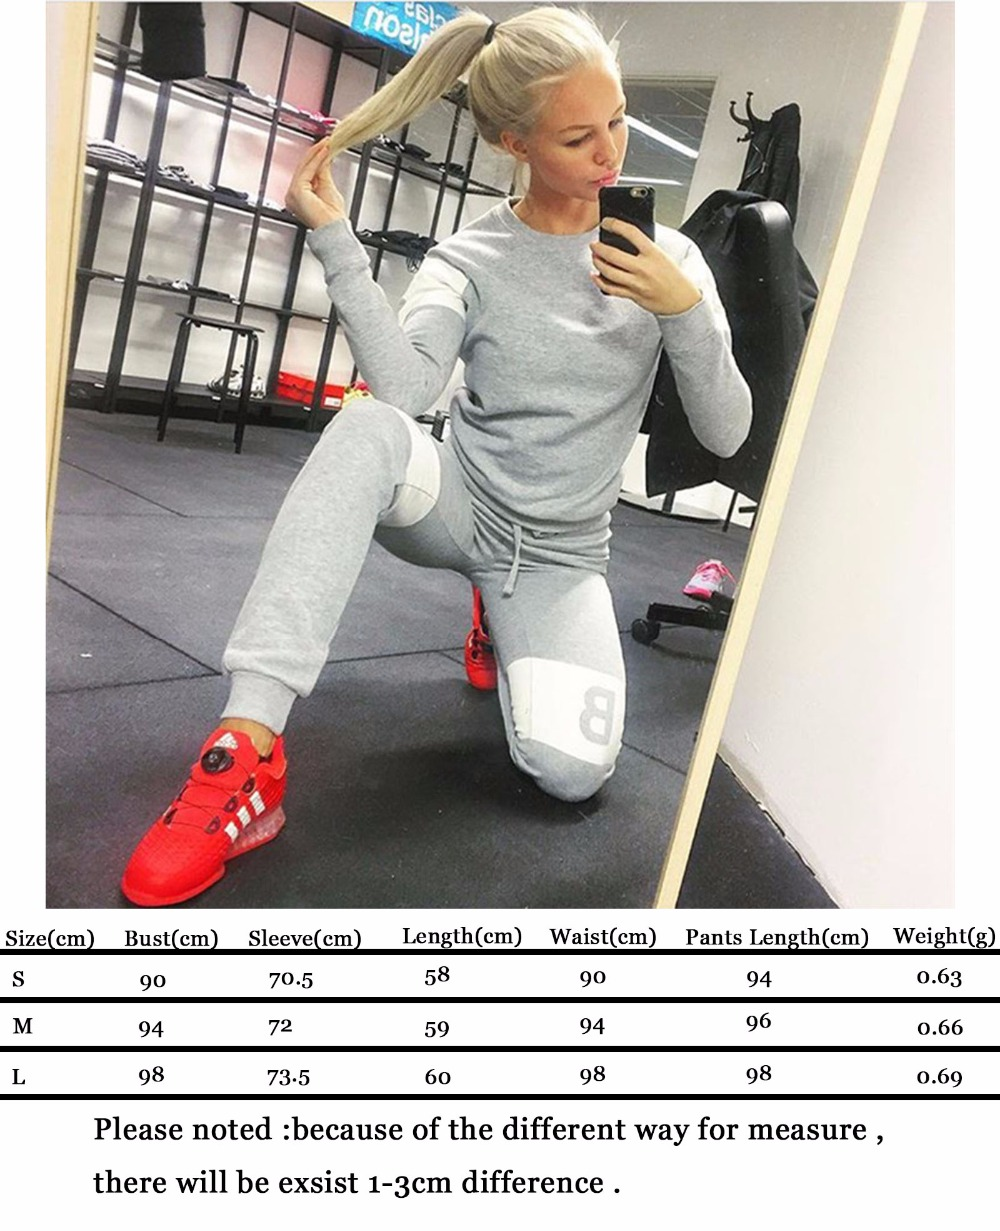 Honest Winter Thermo Leggins Leggings Fitness Sport Jogging Pants Black S M L Padded Consumers First Clothing, Shoes, Accessories Pantyhose & Tights